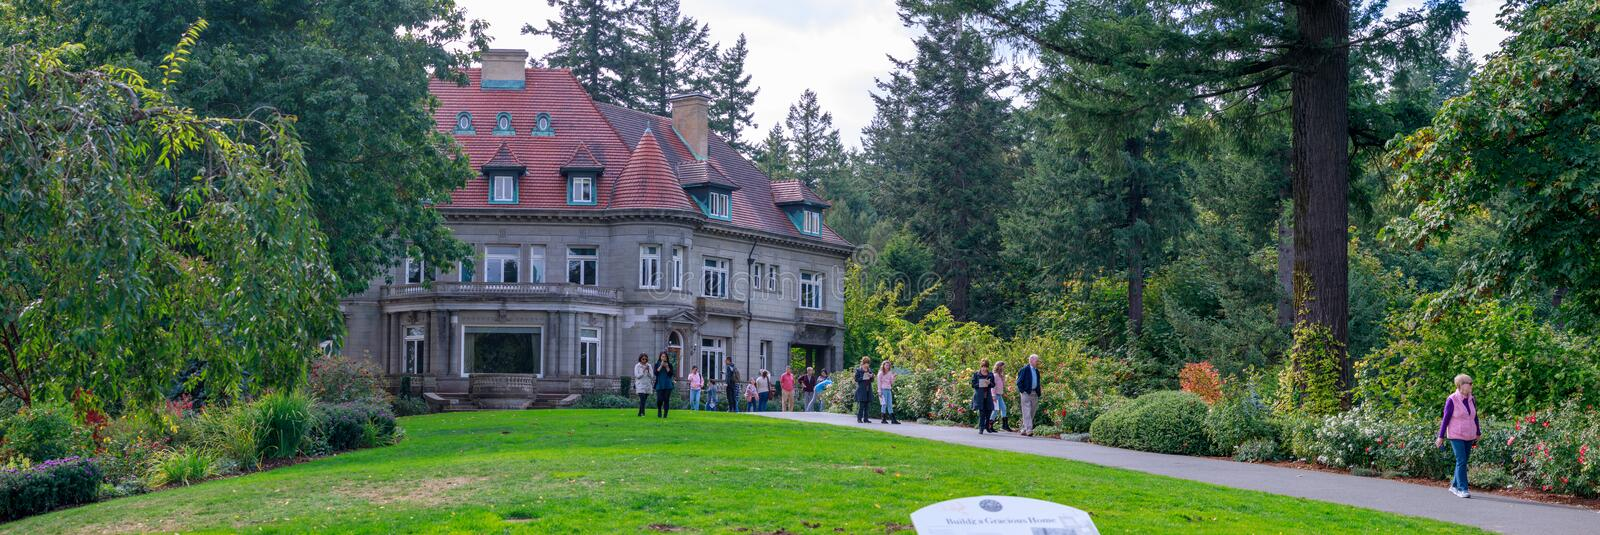 Pittock Mansion - French Renaissance-style chateau in the West Hills of Portland, Oregon, currently Museum stock photo